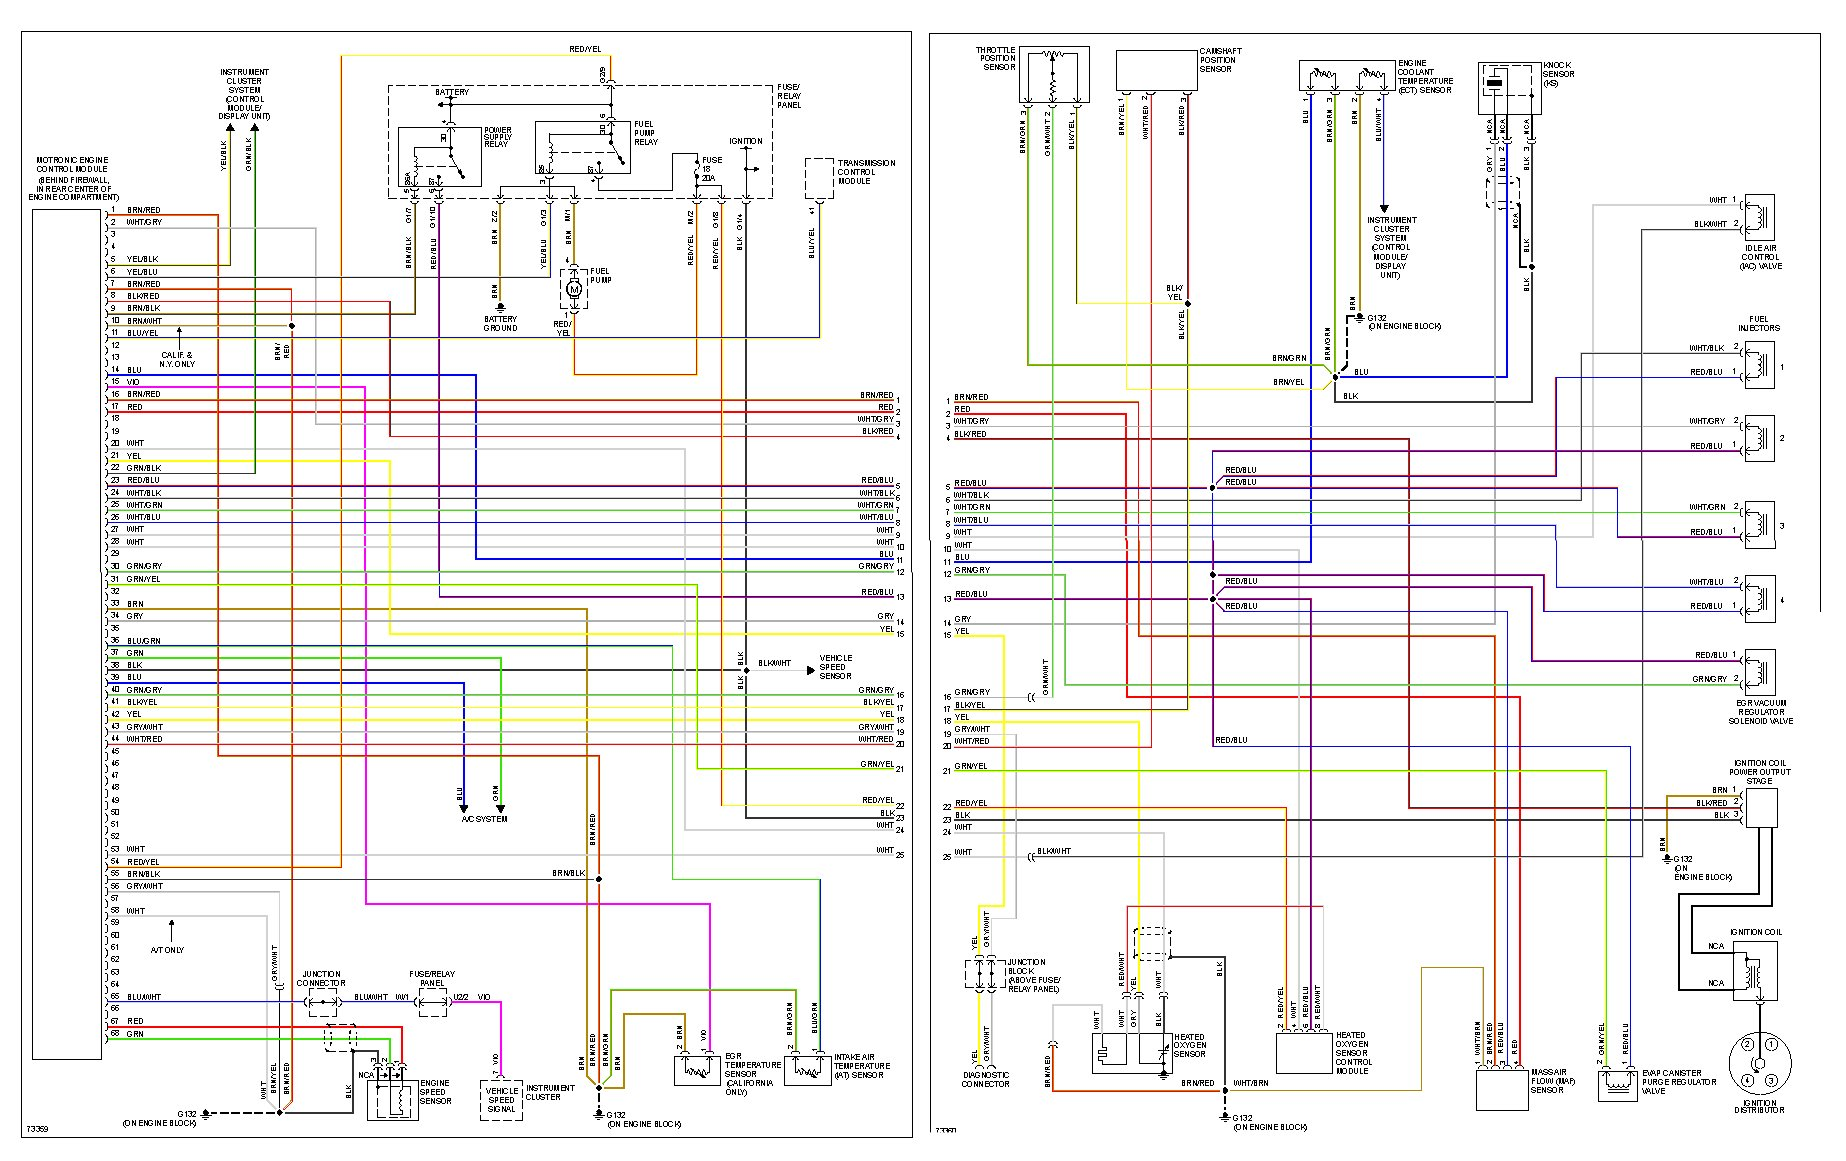 Wiring Diagram 2006 Scion Xb Diagrams For Dummies Dome Light Moreover 2005 Subaru Outback Fuse Box Likewise